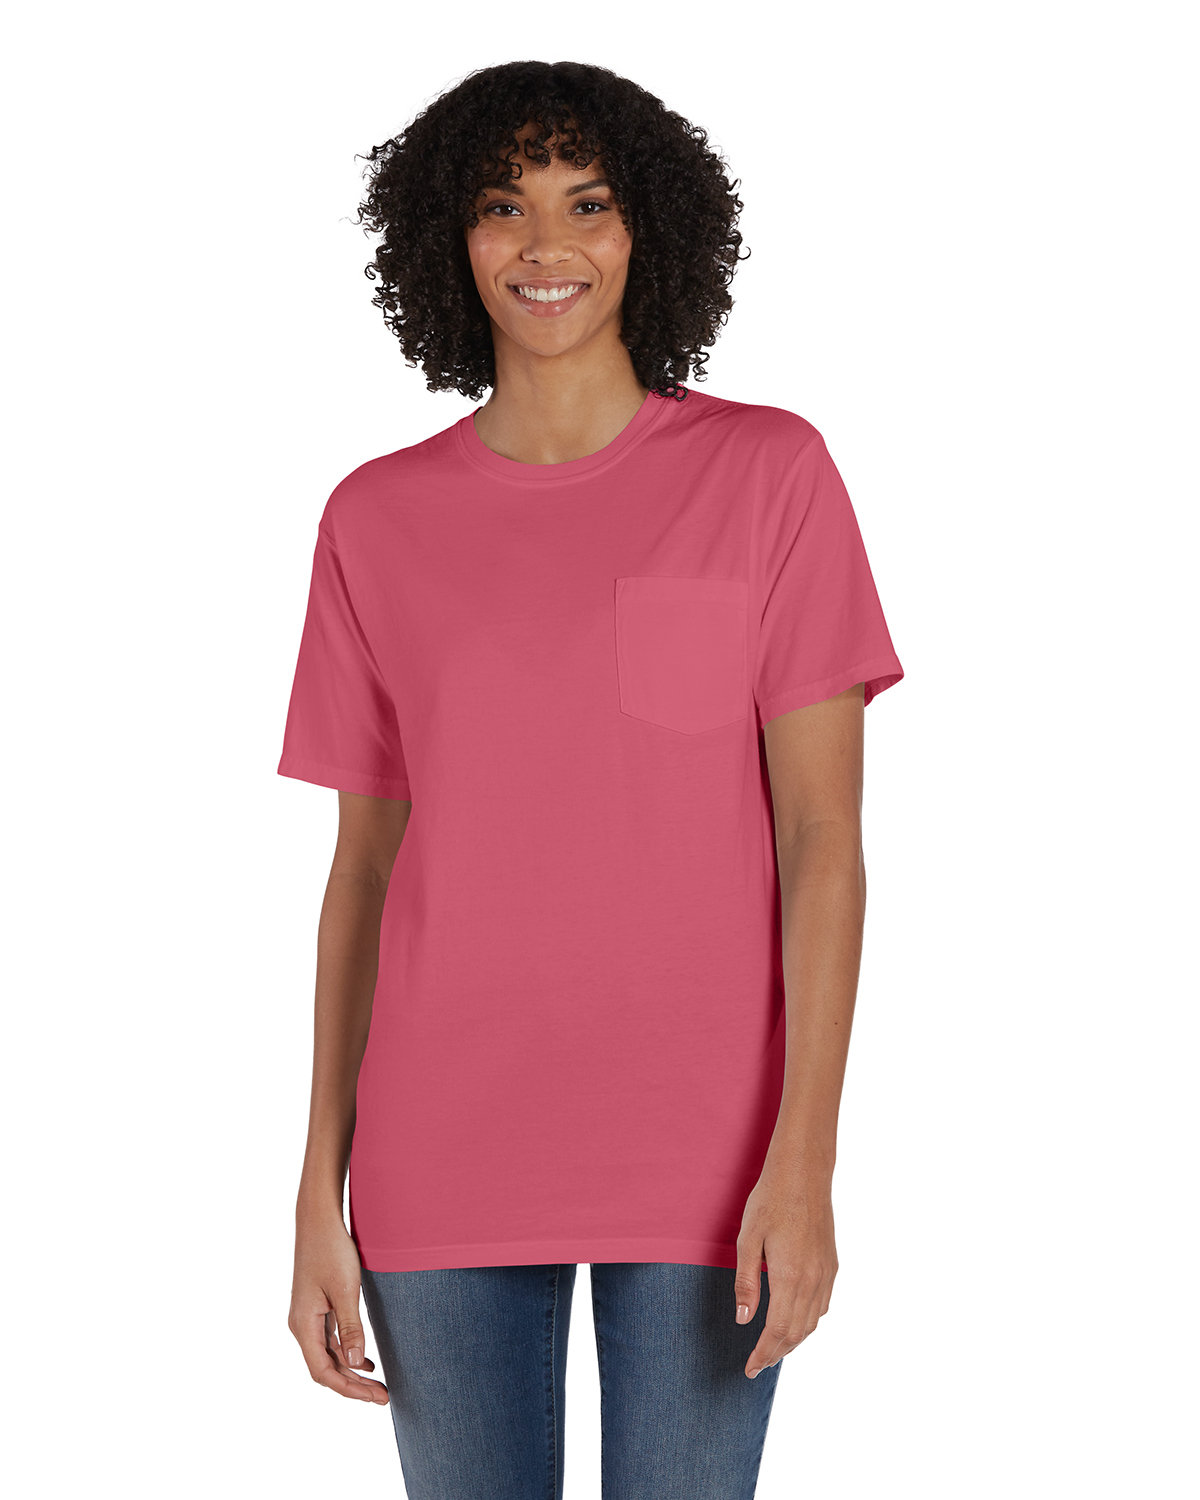 ComfortWash by Hanes Unisex Garment-Dyed T-Shirt with Pocket CORAL CRAZE